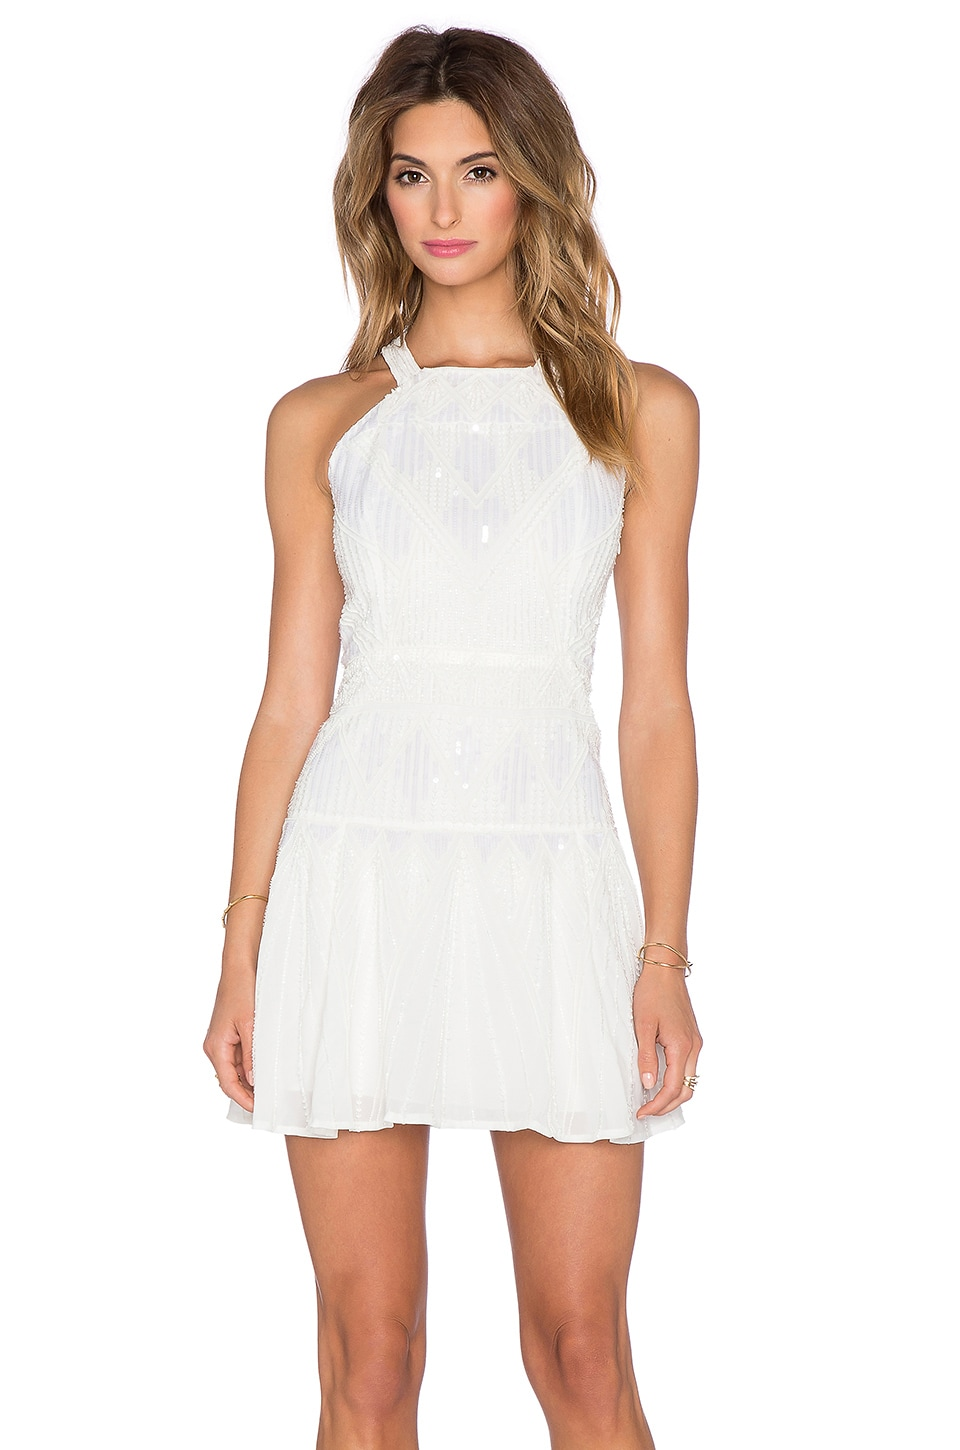 Parker Sequin Sabella Dress in White